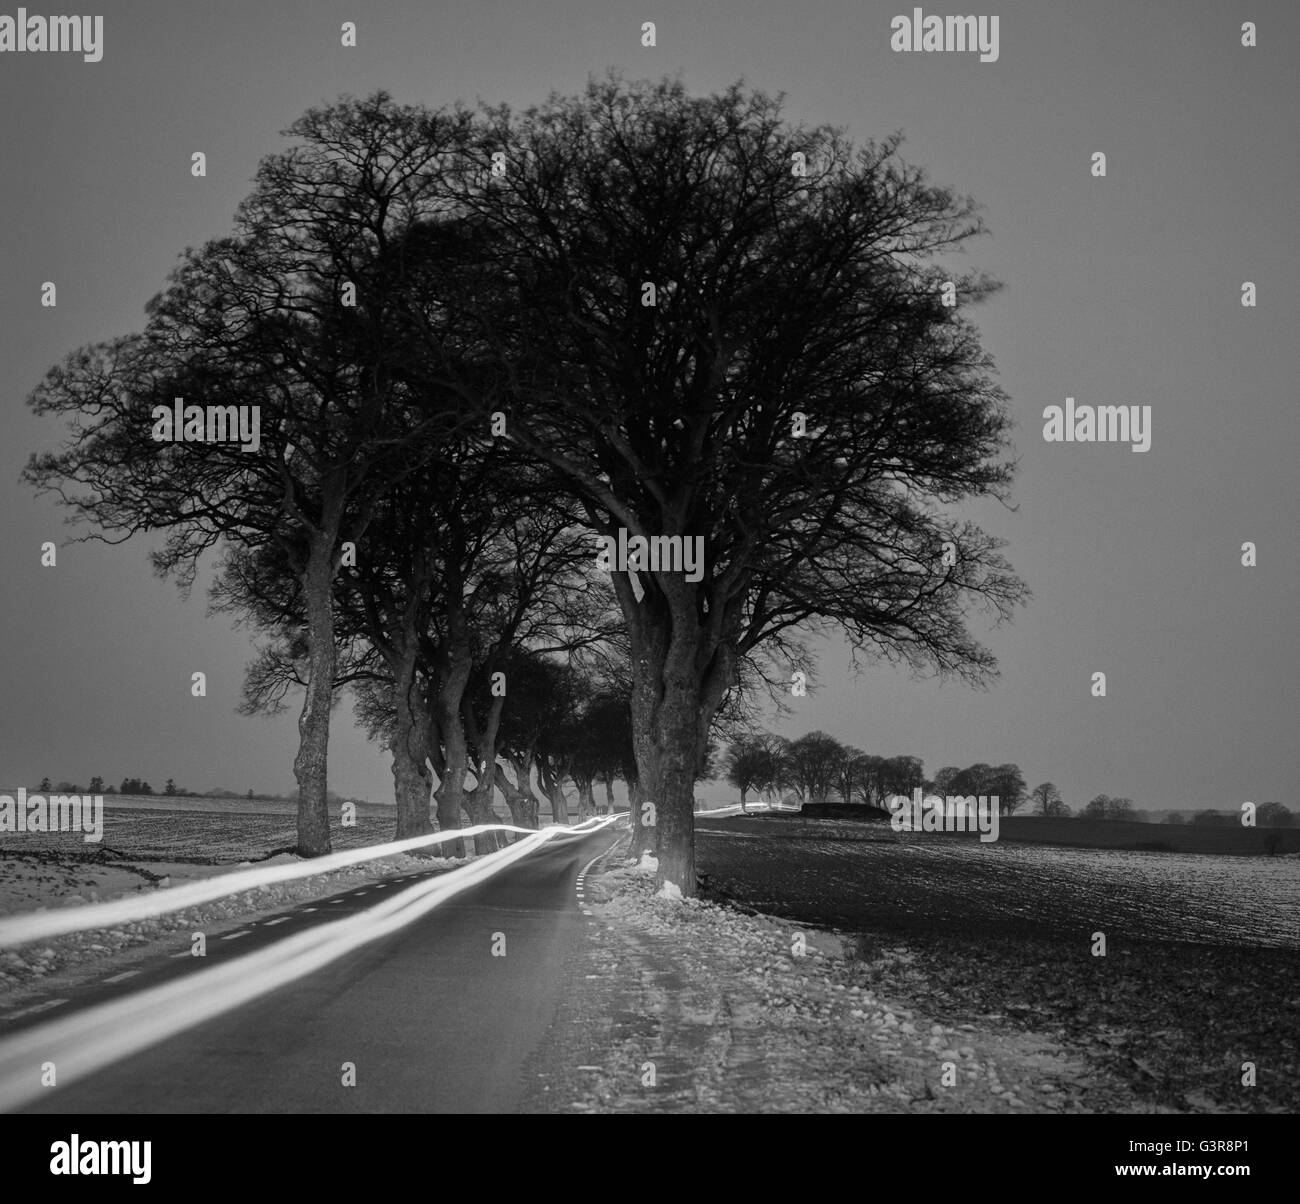 Sweden, Skane, Skurup, Light trail of car in rural road - Stock Image